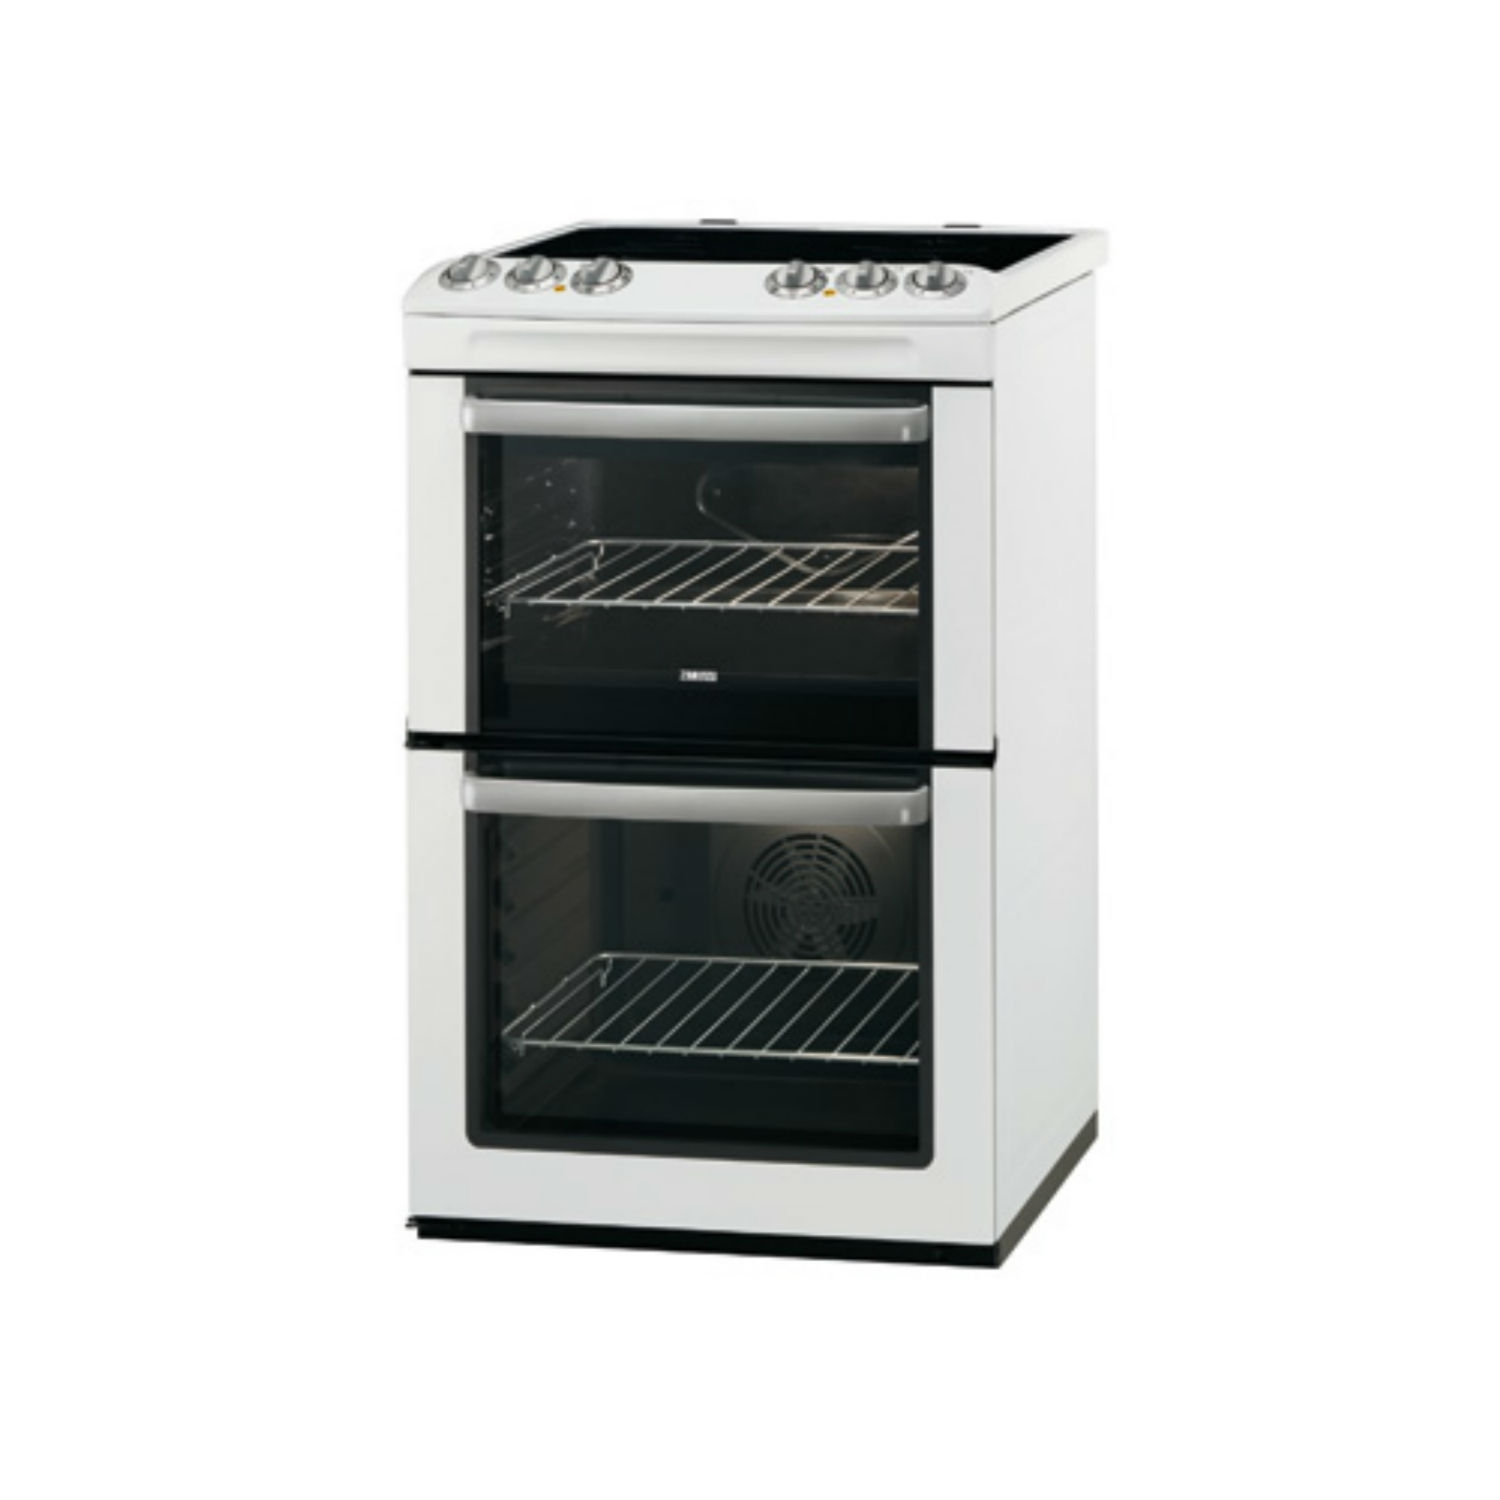 Marvelous Electric Oven And Grill Part - 14: Zanussi ZCV554MWC 55cm Electric Cooker Double Oven U0026 Grill